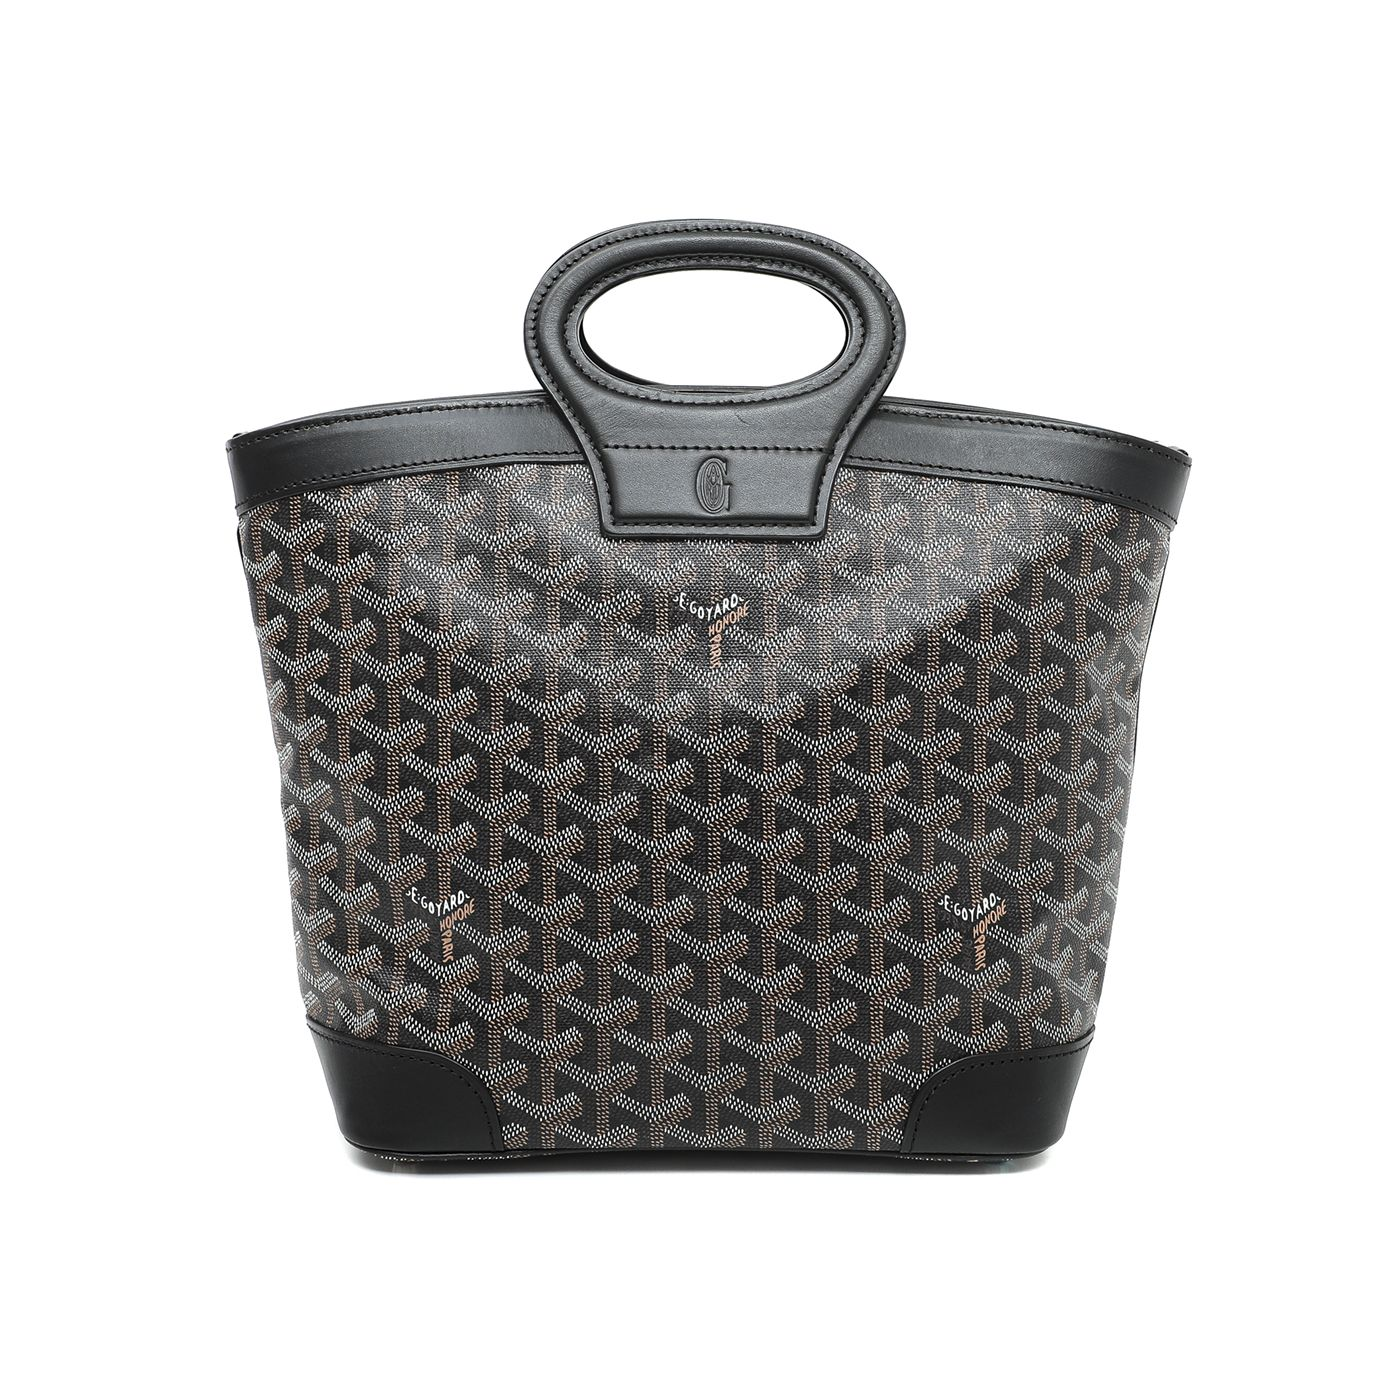 Goyard Black Goyardine Beluga Top Handle Bag